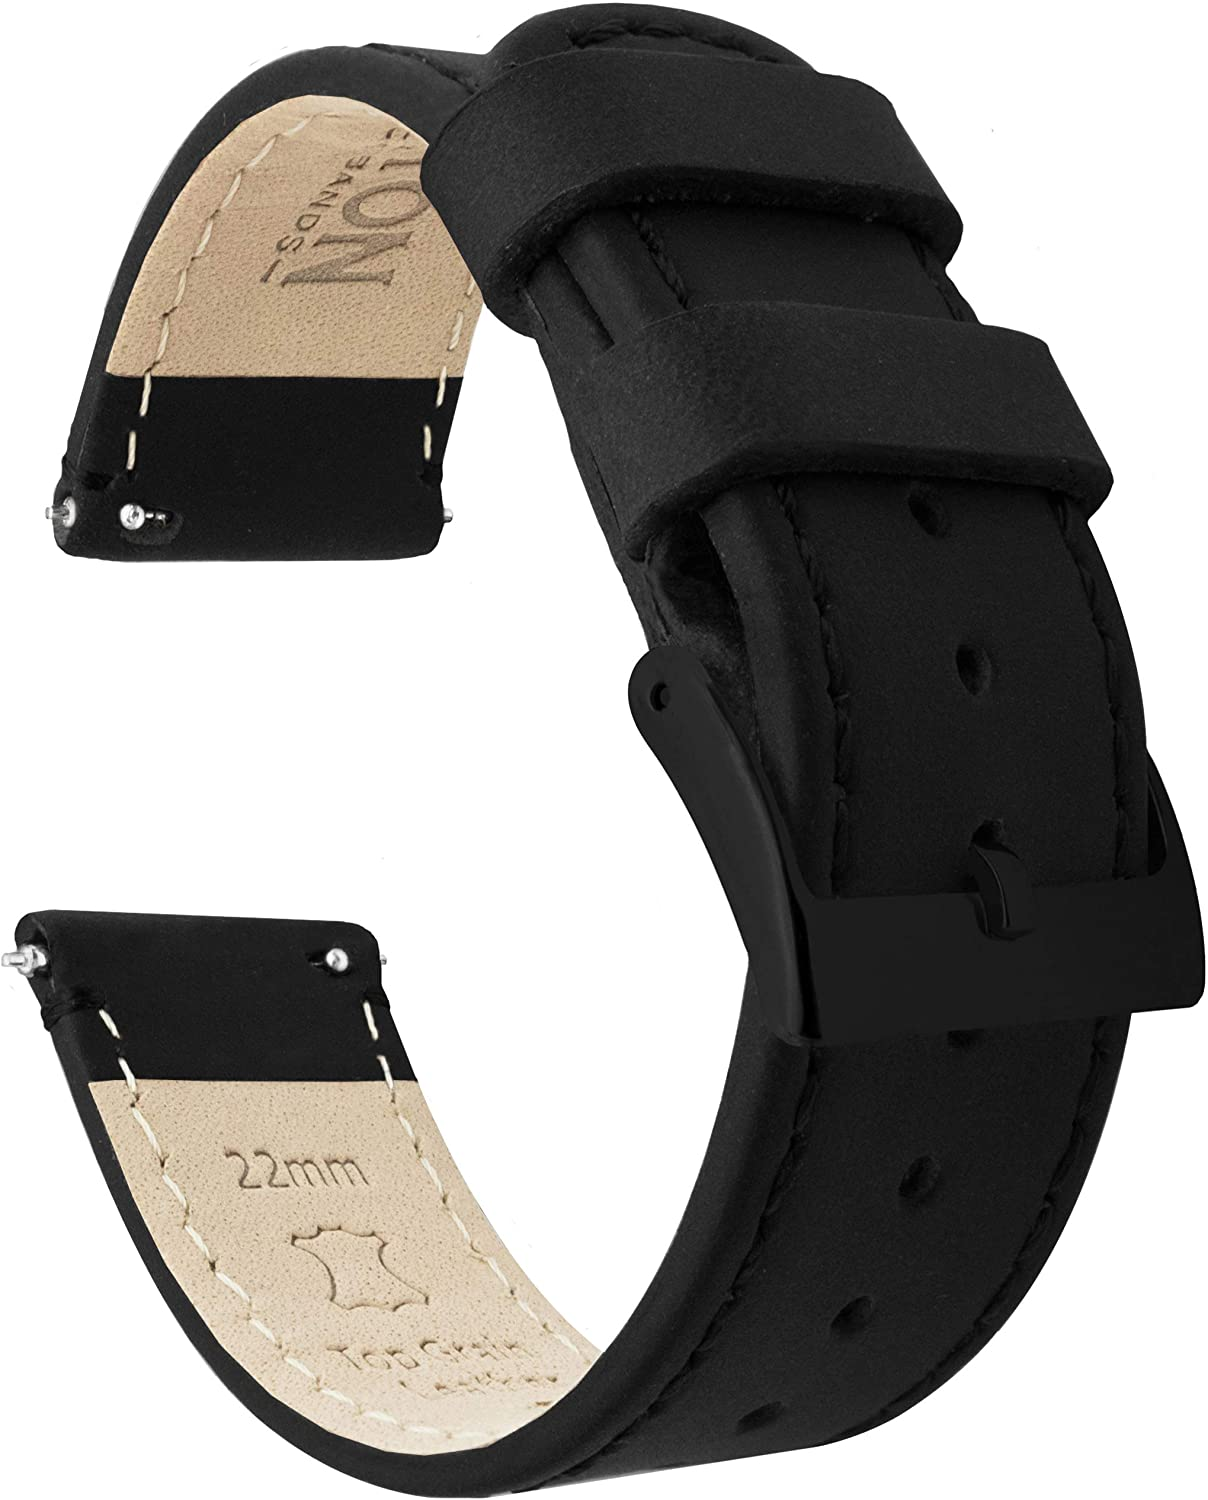 BARTON Watch Bands - Top Grain Leather Quick Release Strap - Black Buckle - Choice of Color & Width - 16mm, 18mm, 20mm, 22mm or 24mm